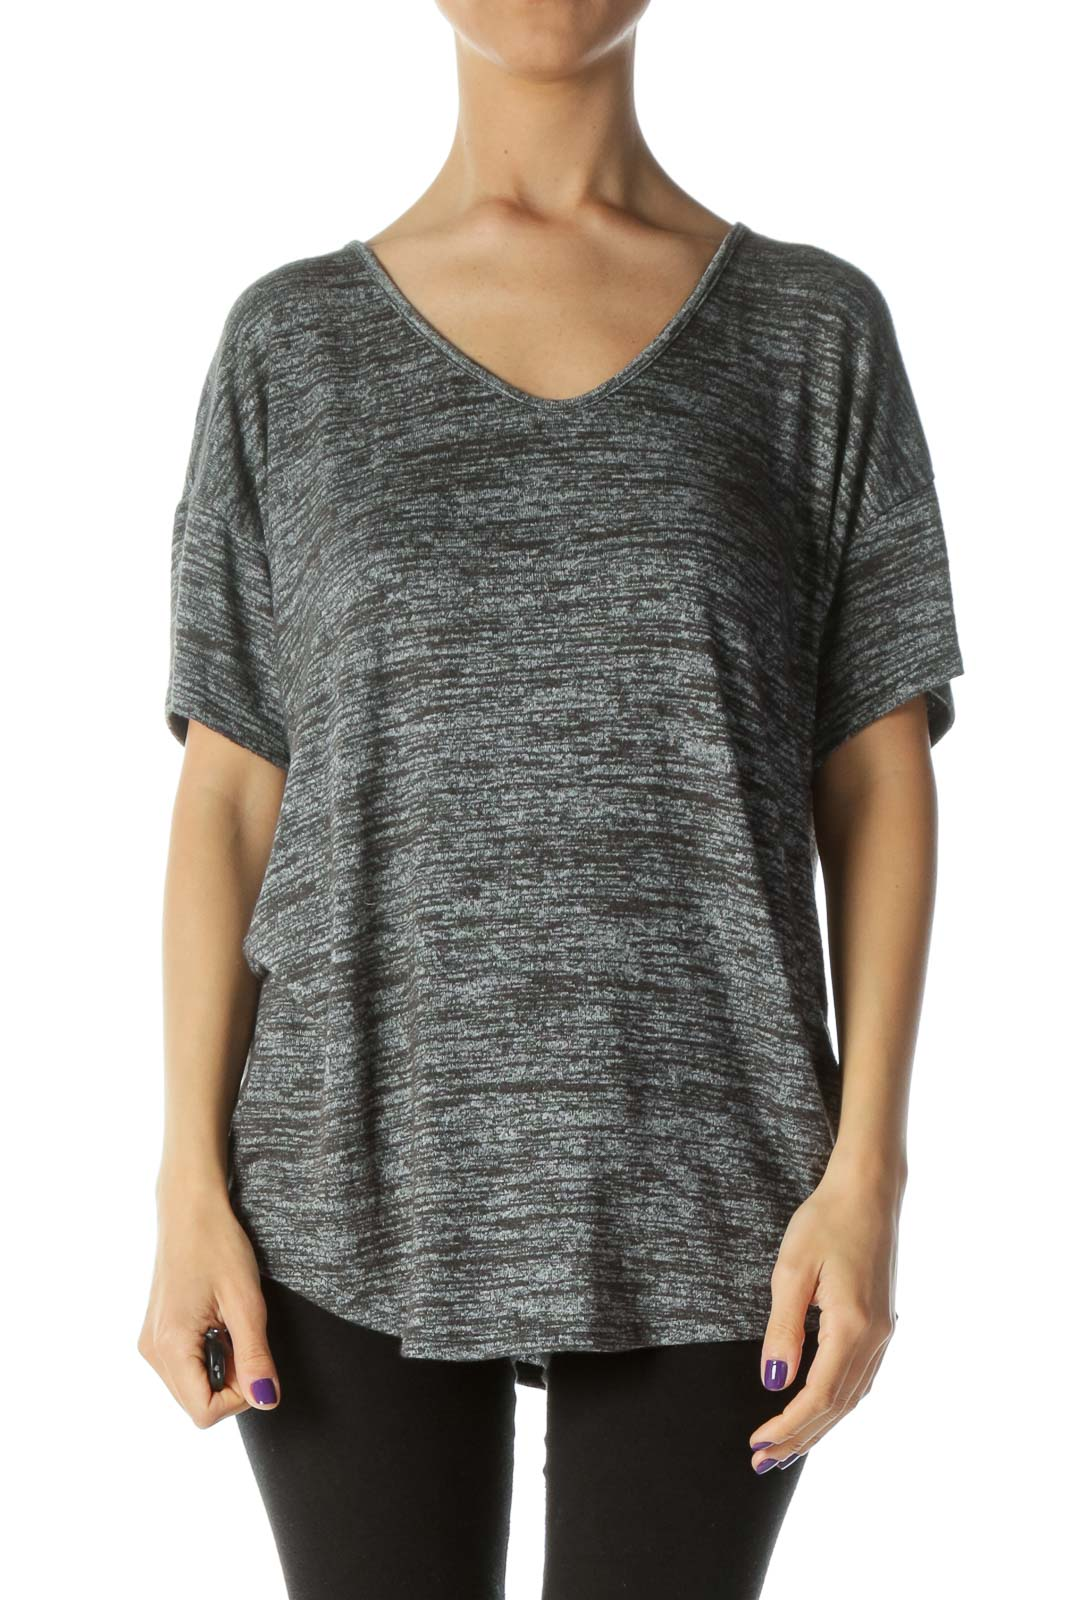 Heather-Gray Stretchy Over-Sized Short-Sleeve Tee